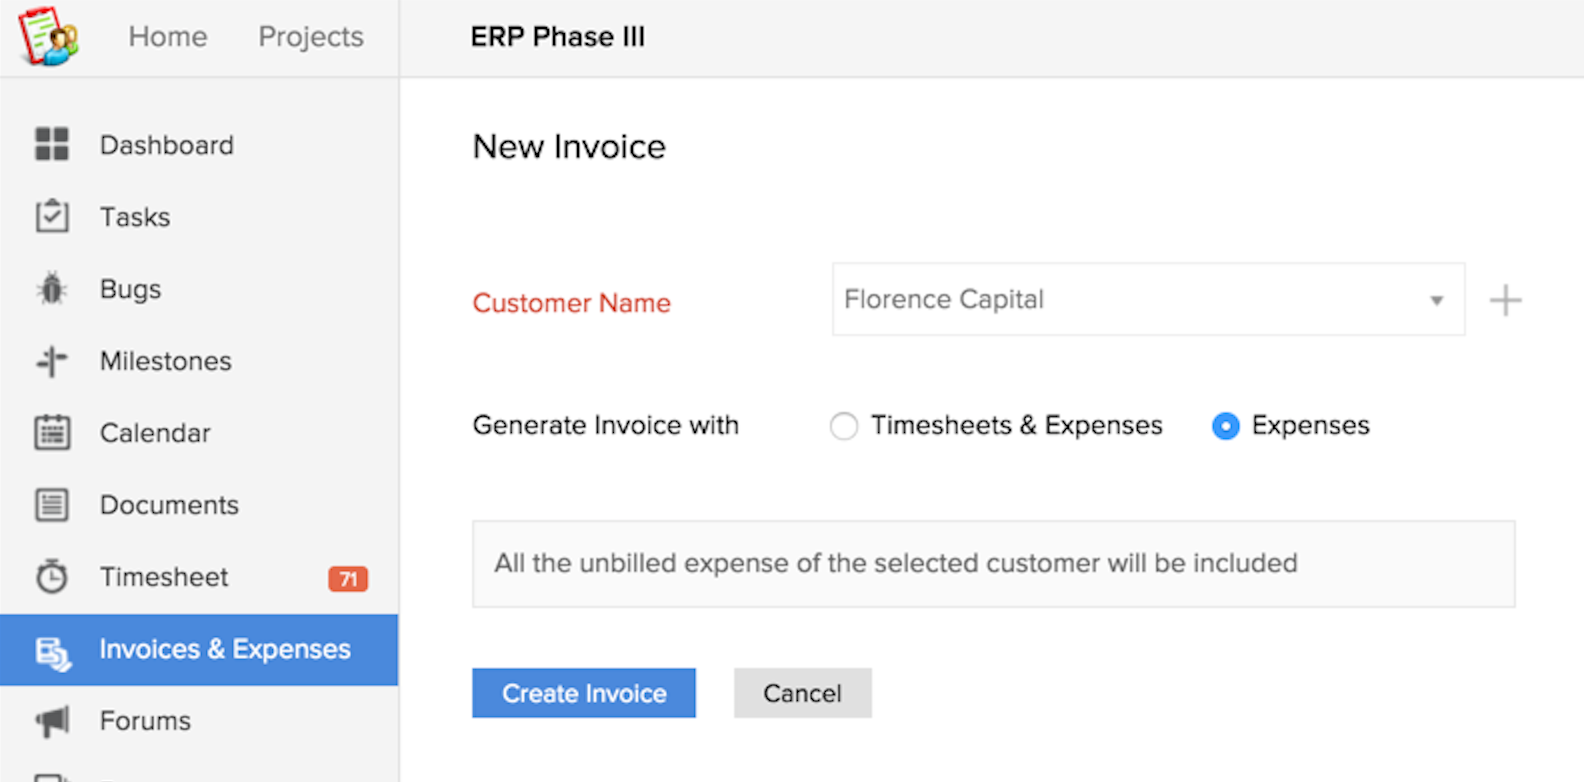 Invoice Via Expenses